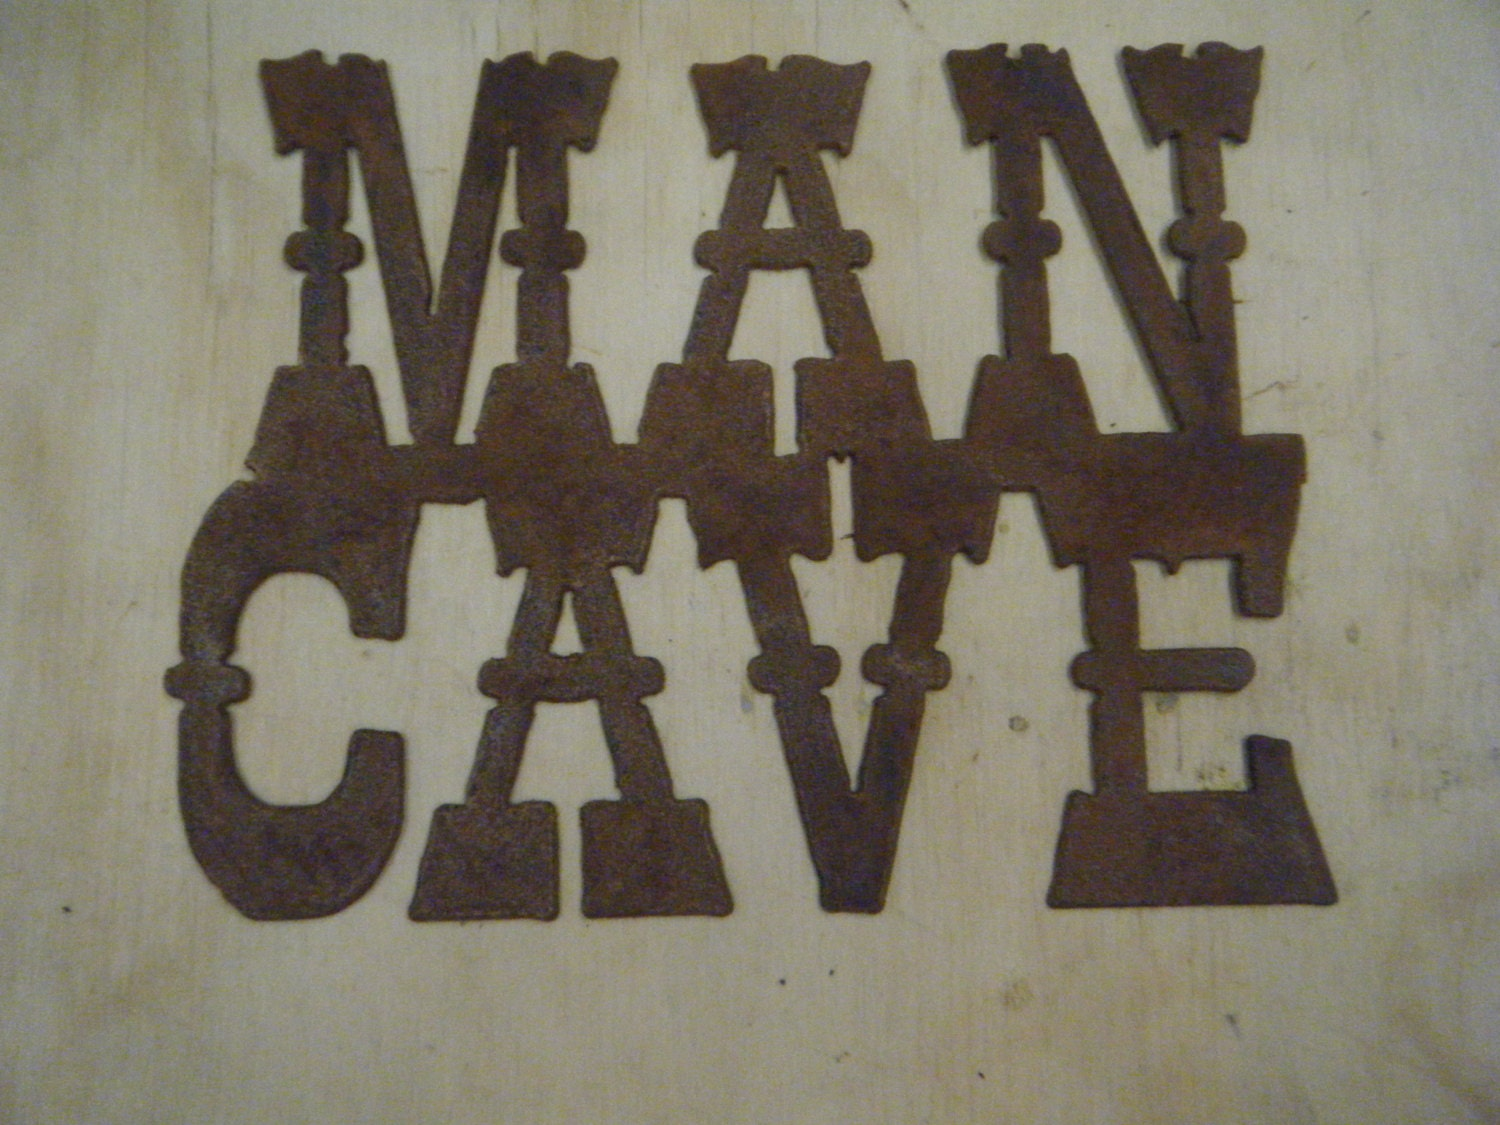 Personalized Man Cave Signs Free Shipping : Free shipping rusted rustic metal man cave sign